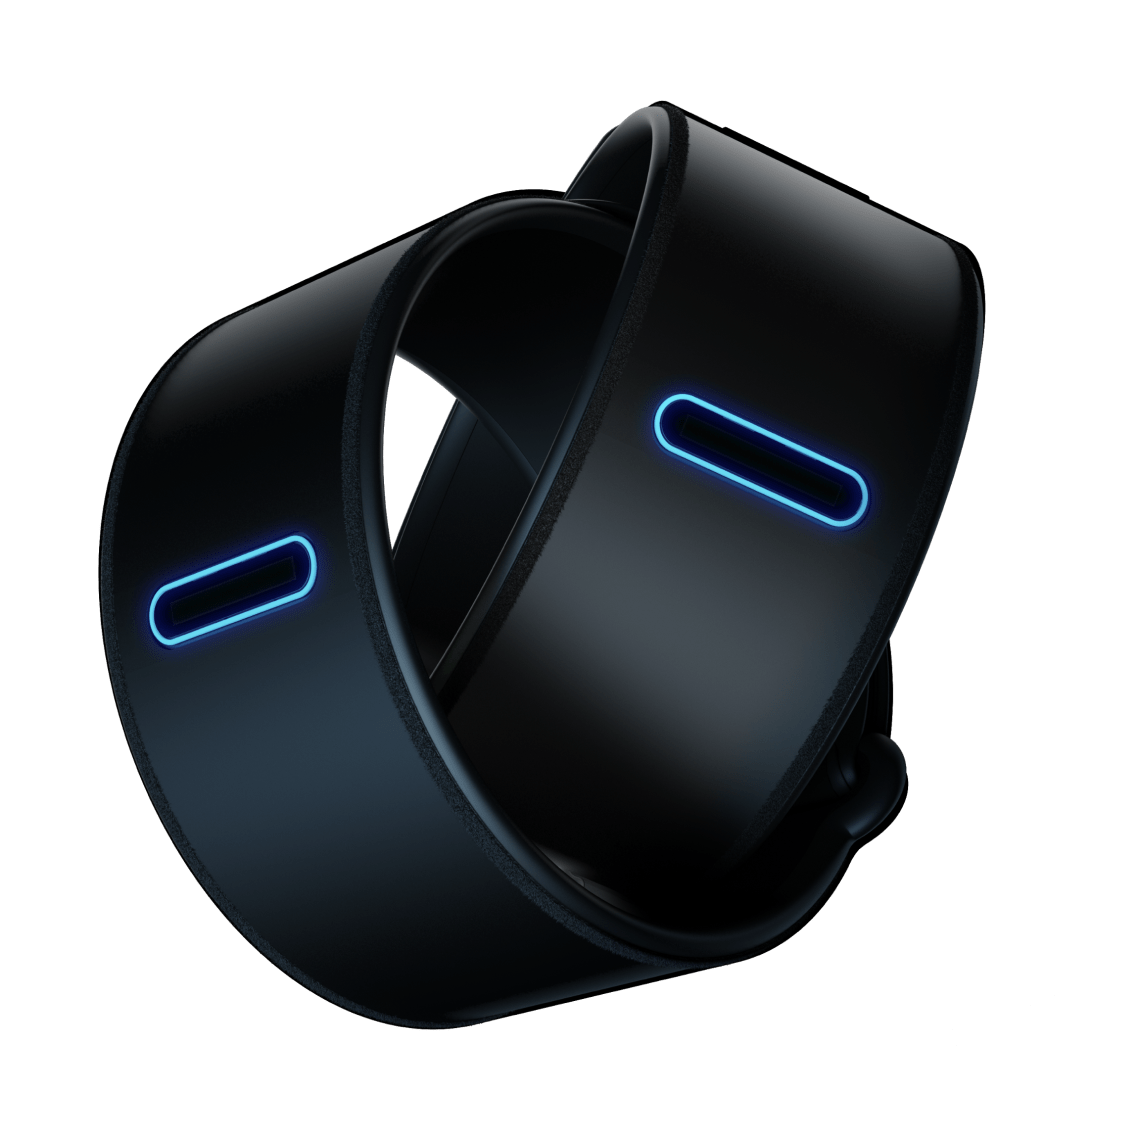 get wearable high tech bracelet with bone-conduction